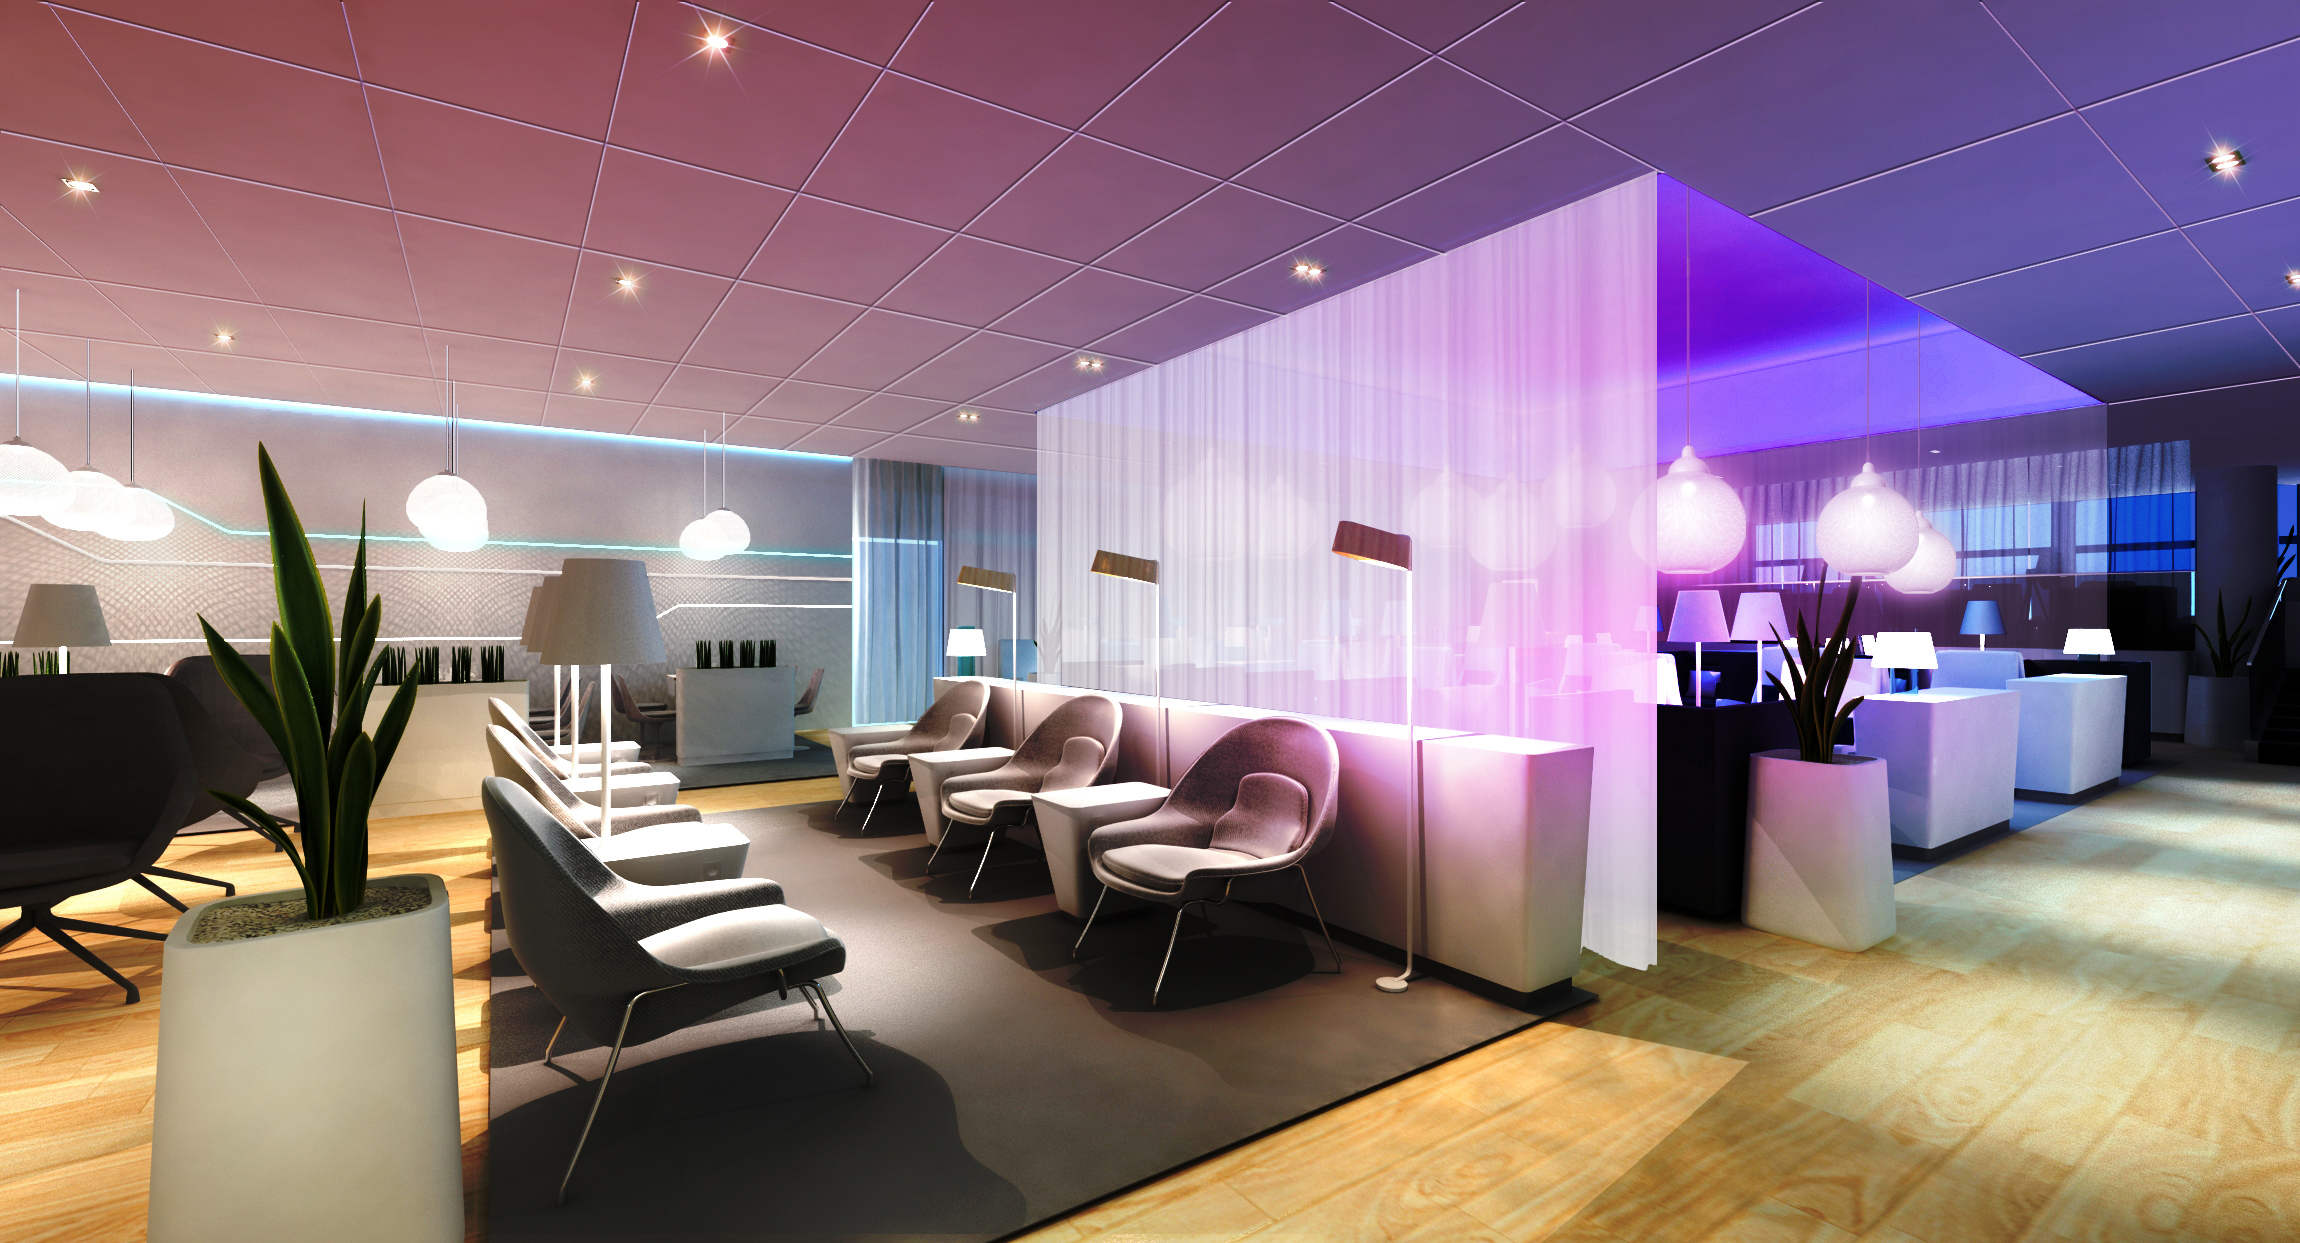 How to get into Airline Lounges on an Economy Budget